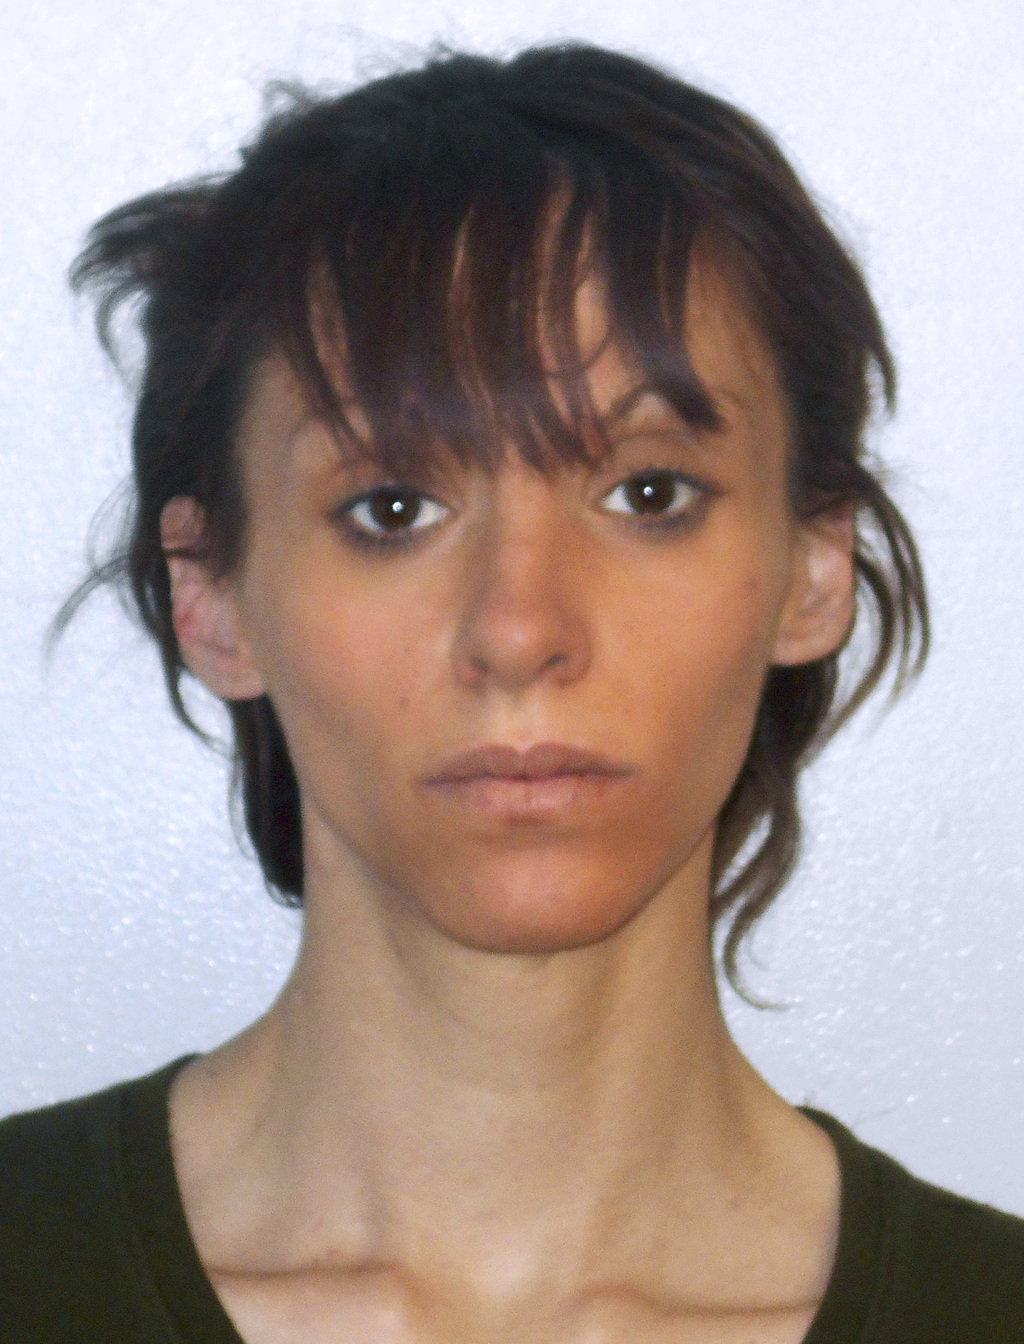 This booking photo released Wednesday, March 8, 2017, by the Concord, N.H., Police Department shows Felicia Farruggia, arrested about s...